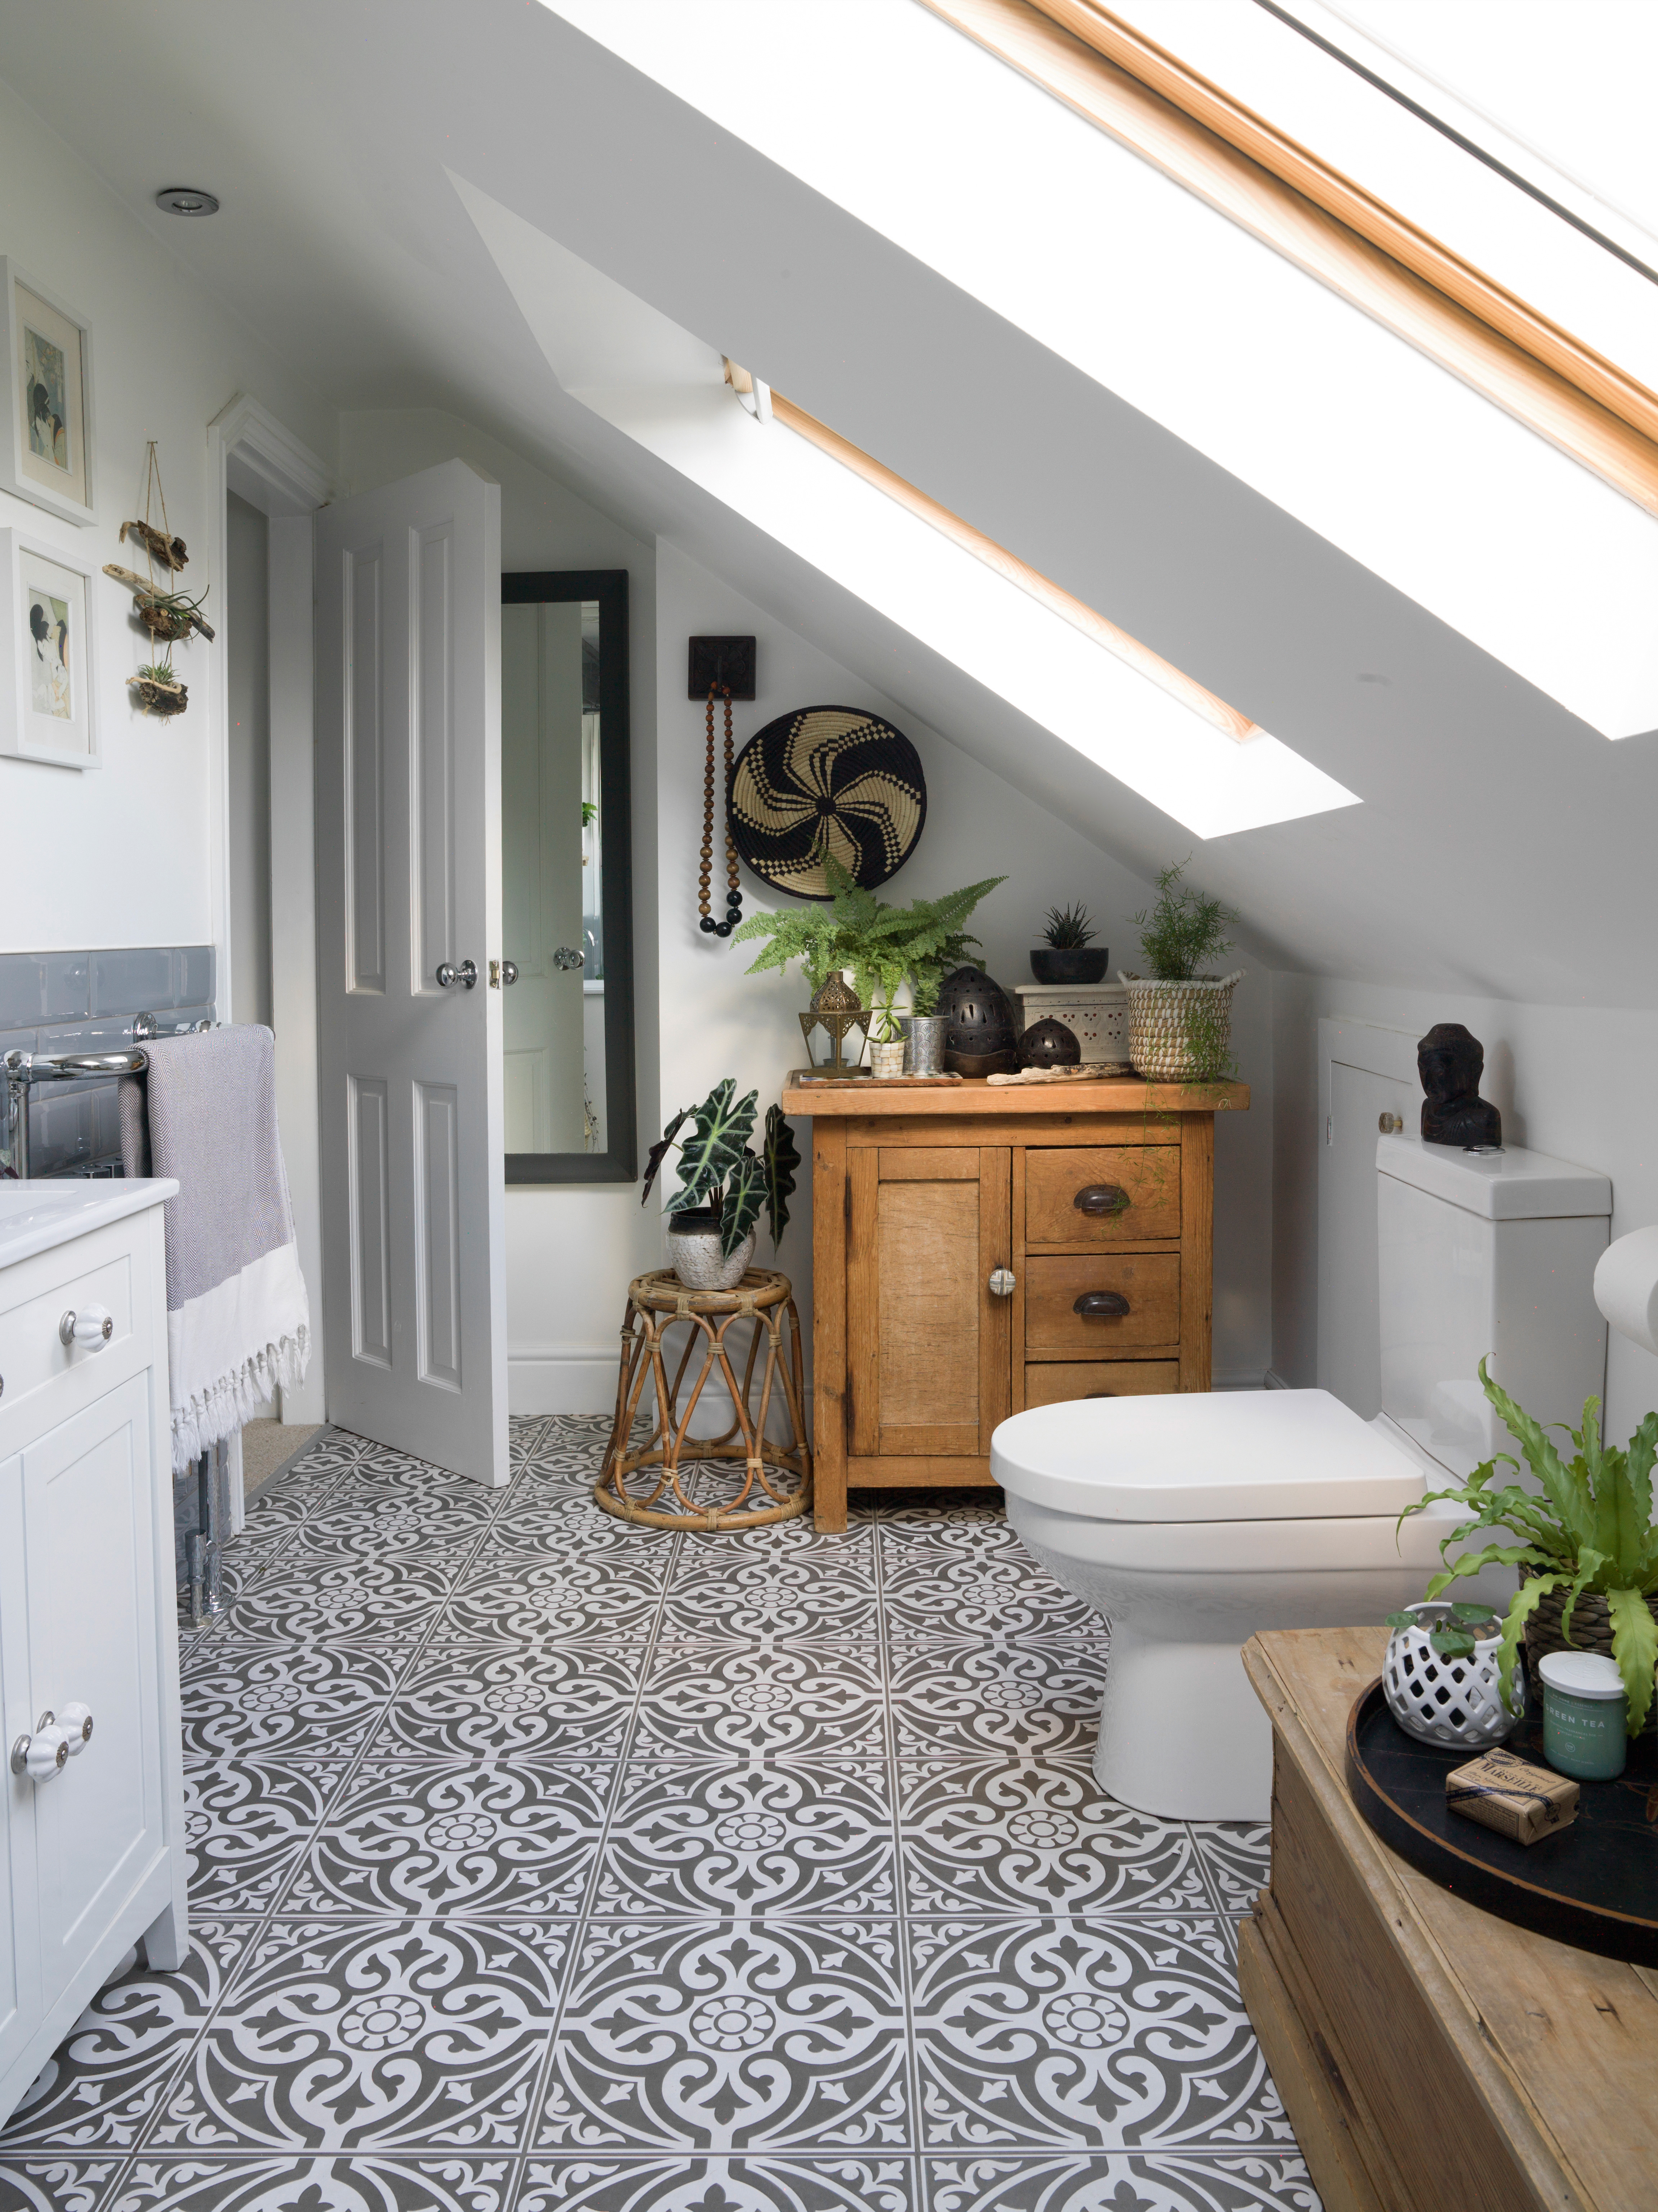 30 Small Bathroom Ideas To Make The Most Of Your Tiny Space Real Homes